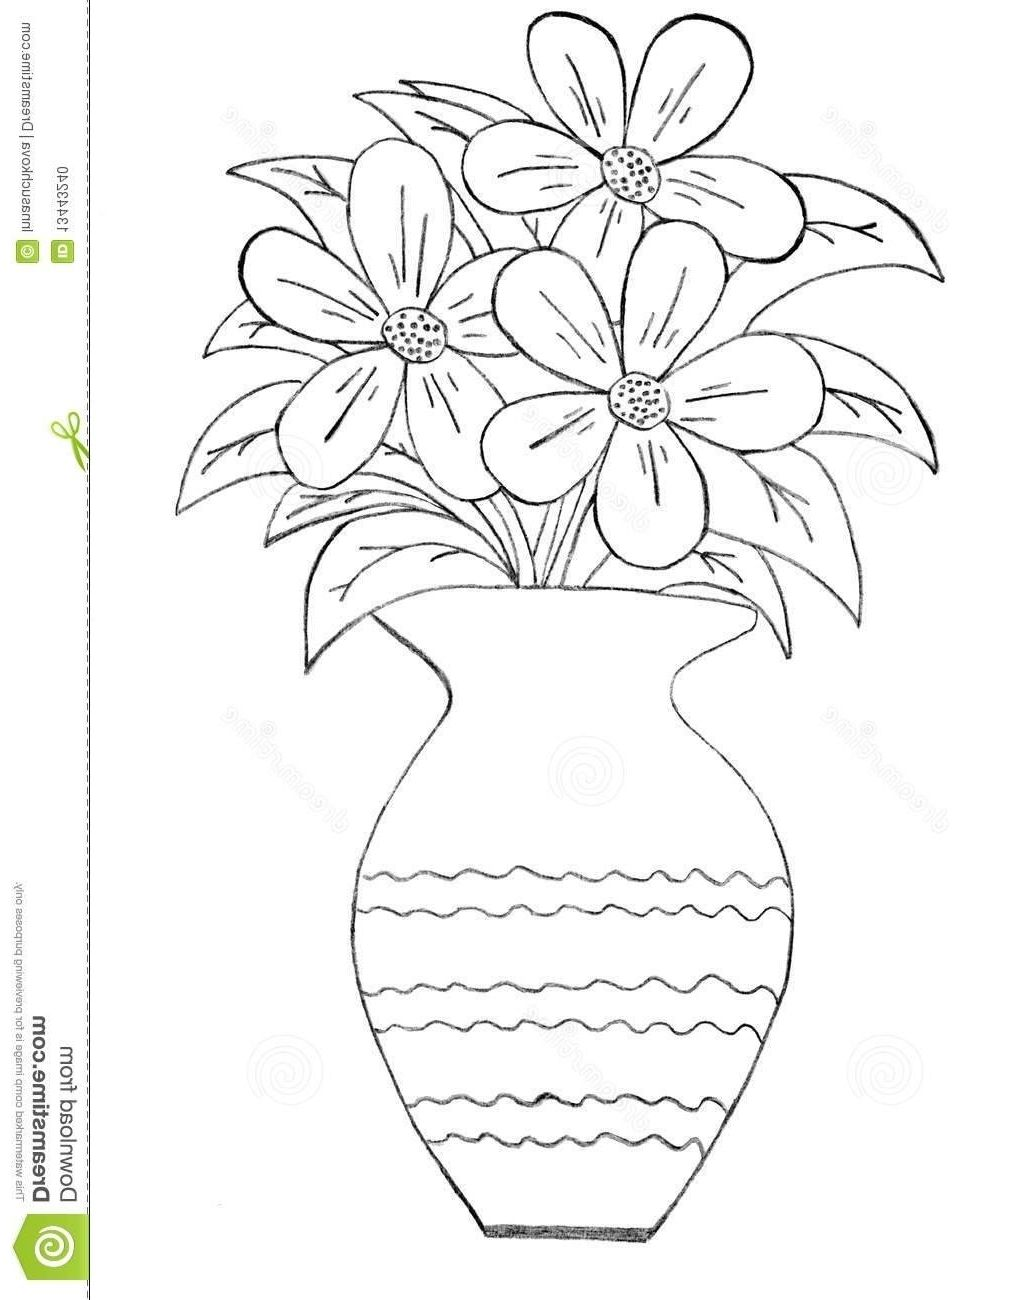 Flower Vase Sketch Images Flower Vase Drawing Flower Sketches Pencil Drawing Pictures